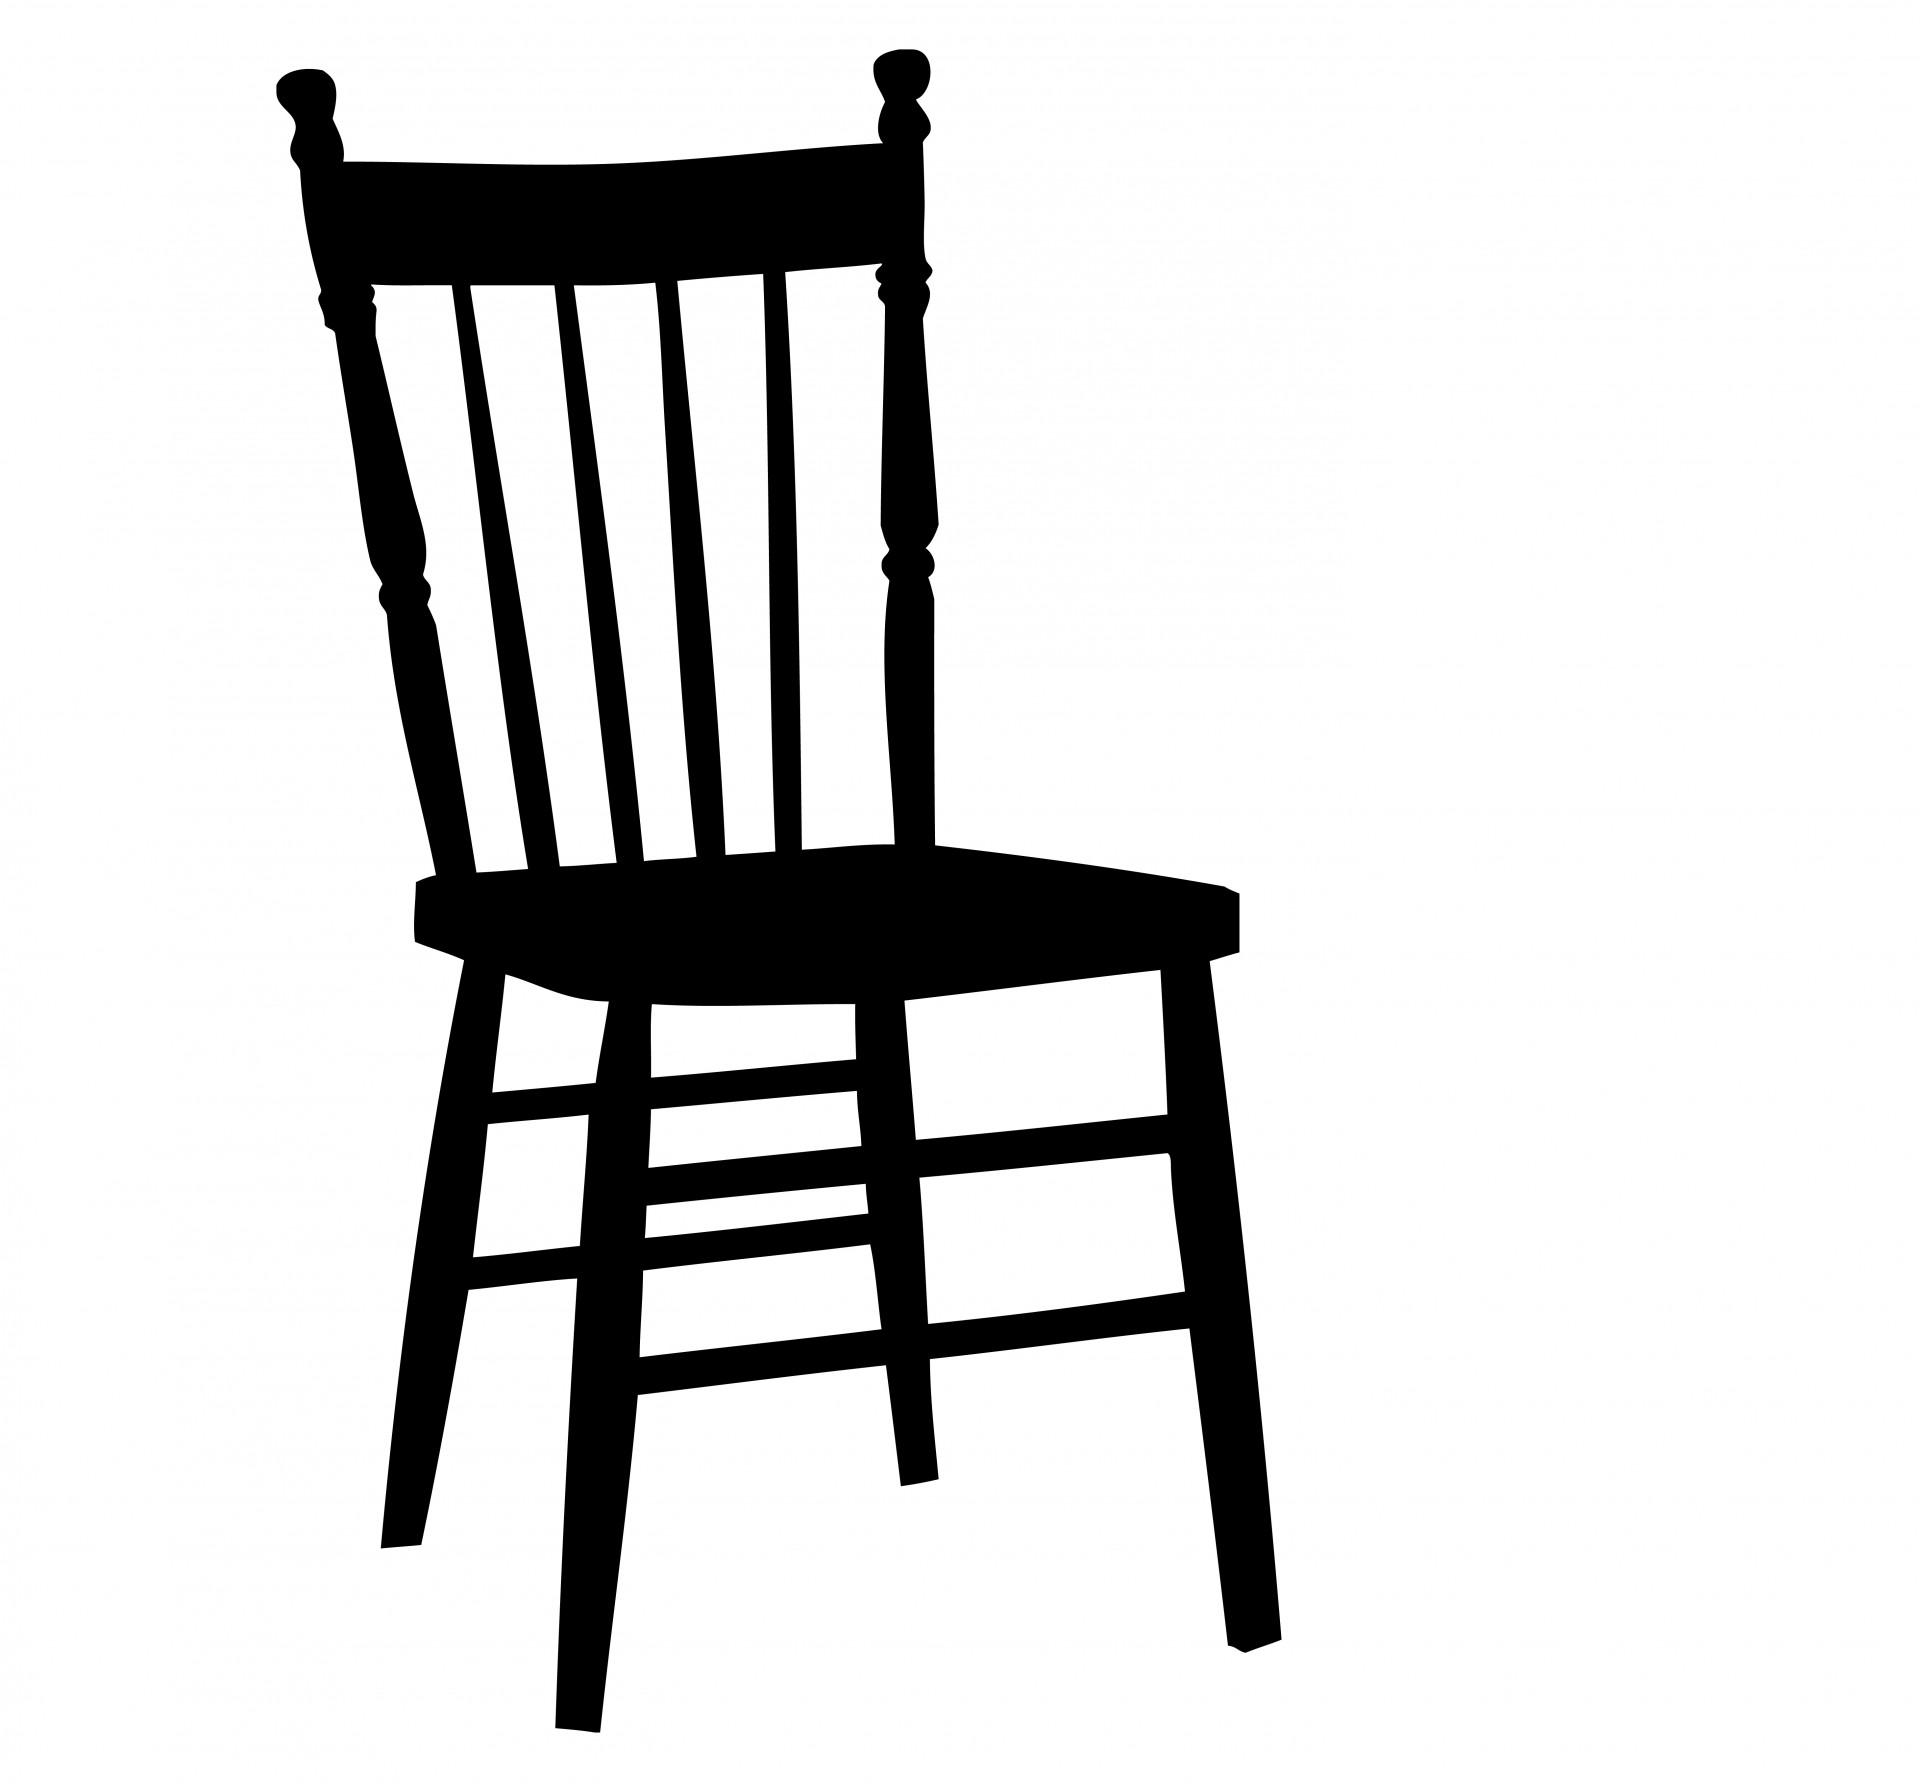 Free stock photo public. Clipart chair